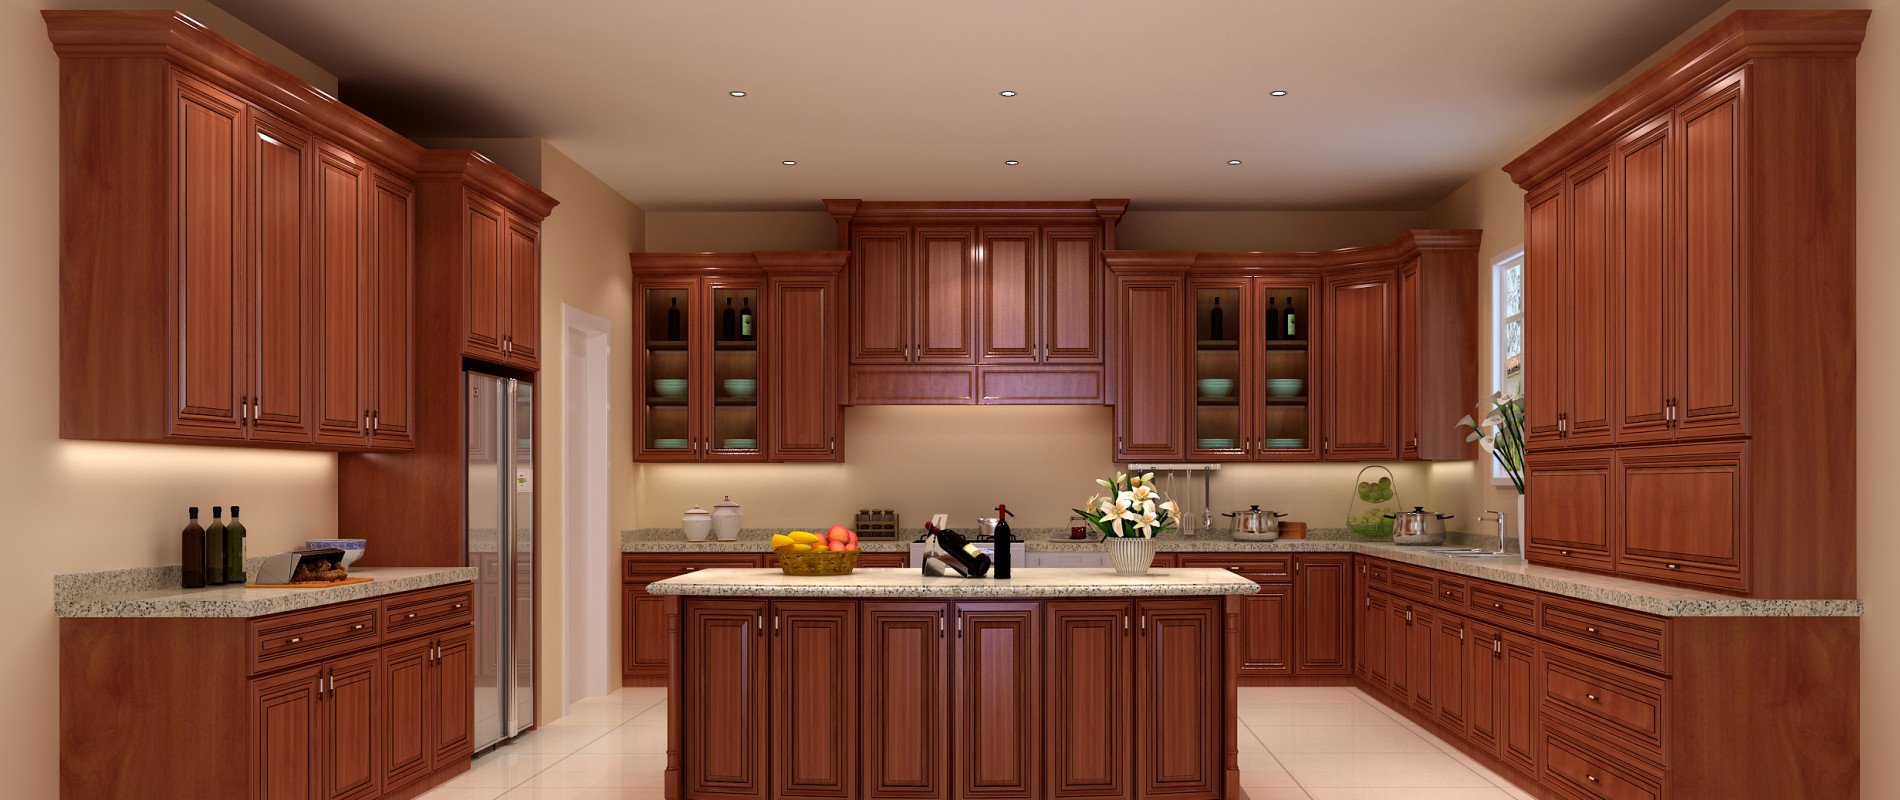 Kitchen Cabinet Door Styles | Wood Cabinets Nashville TN